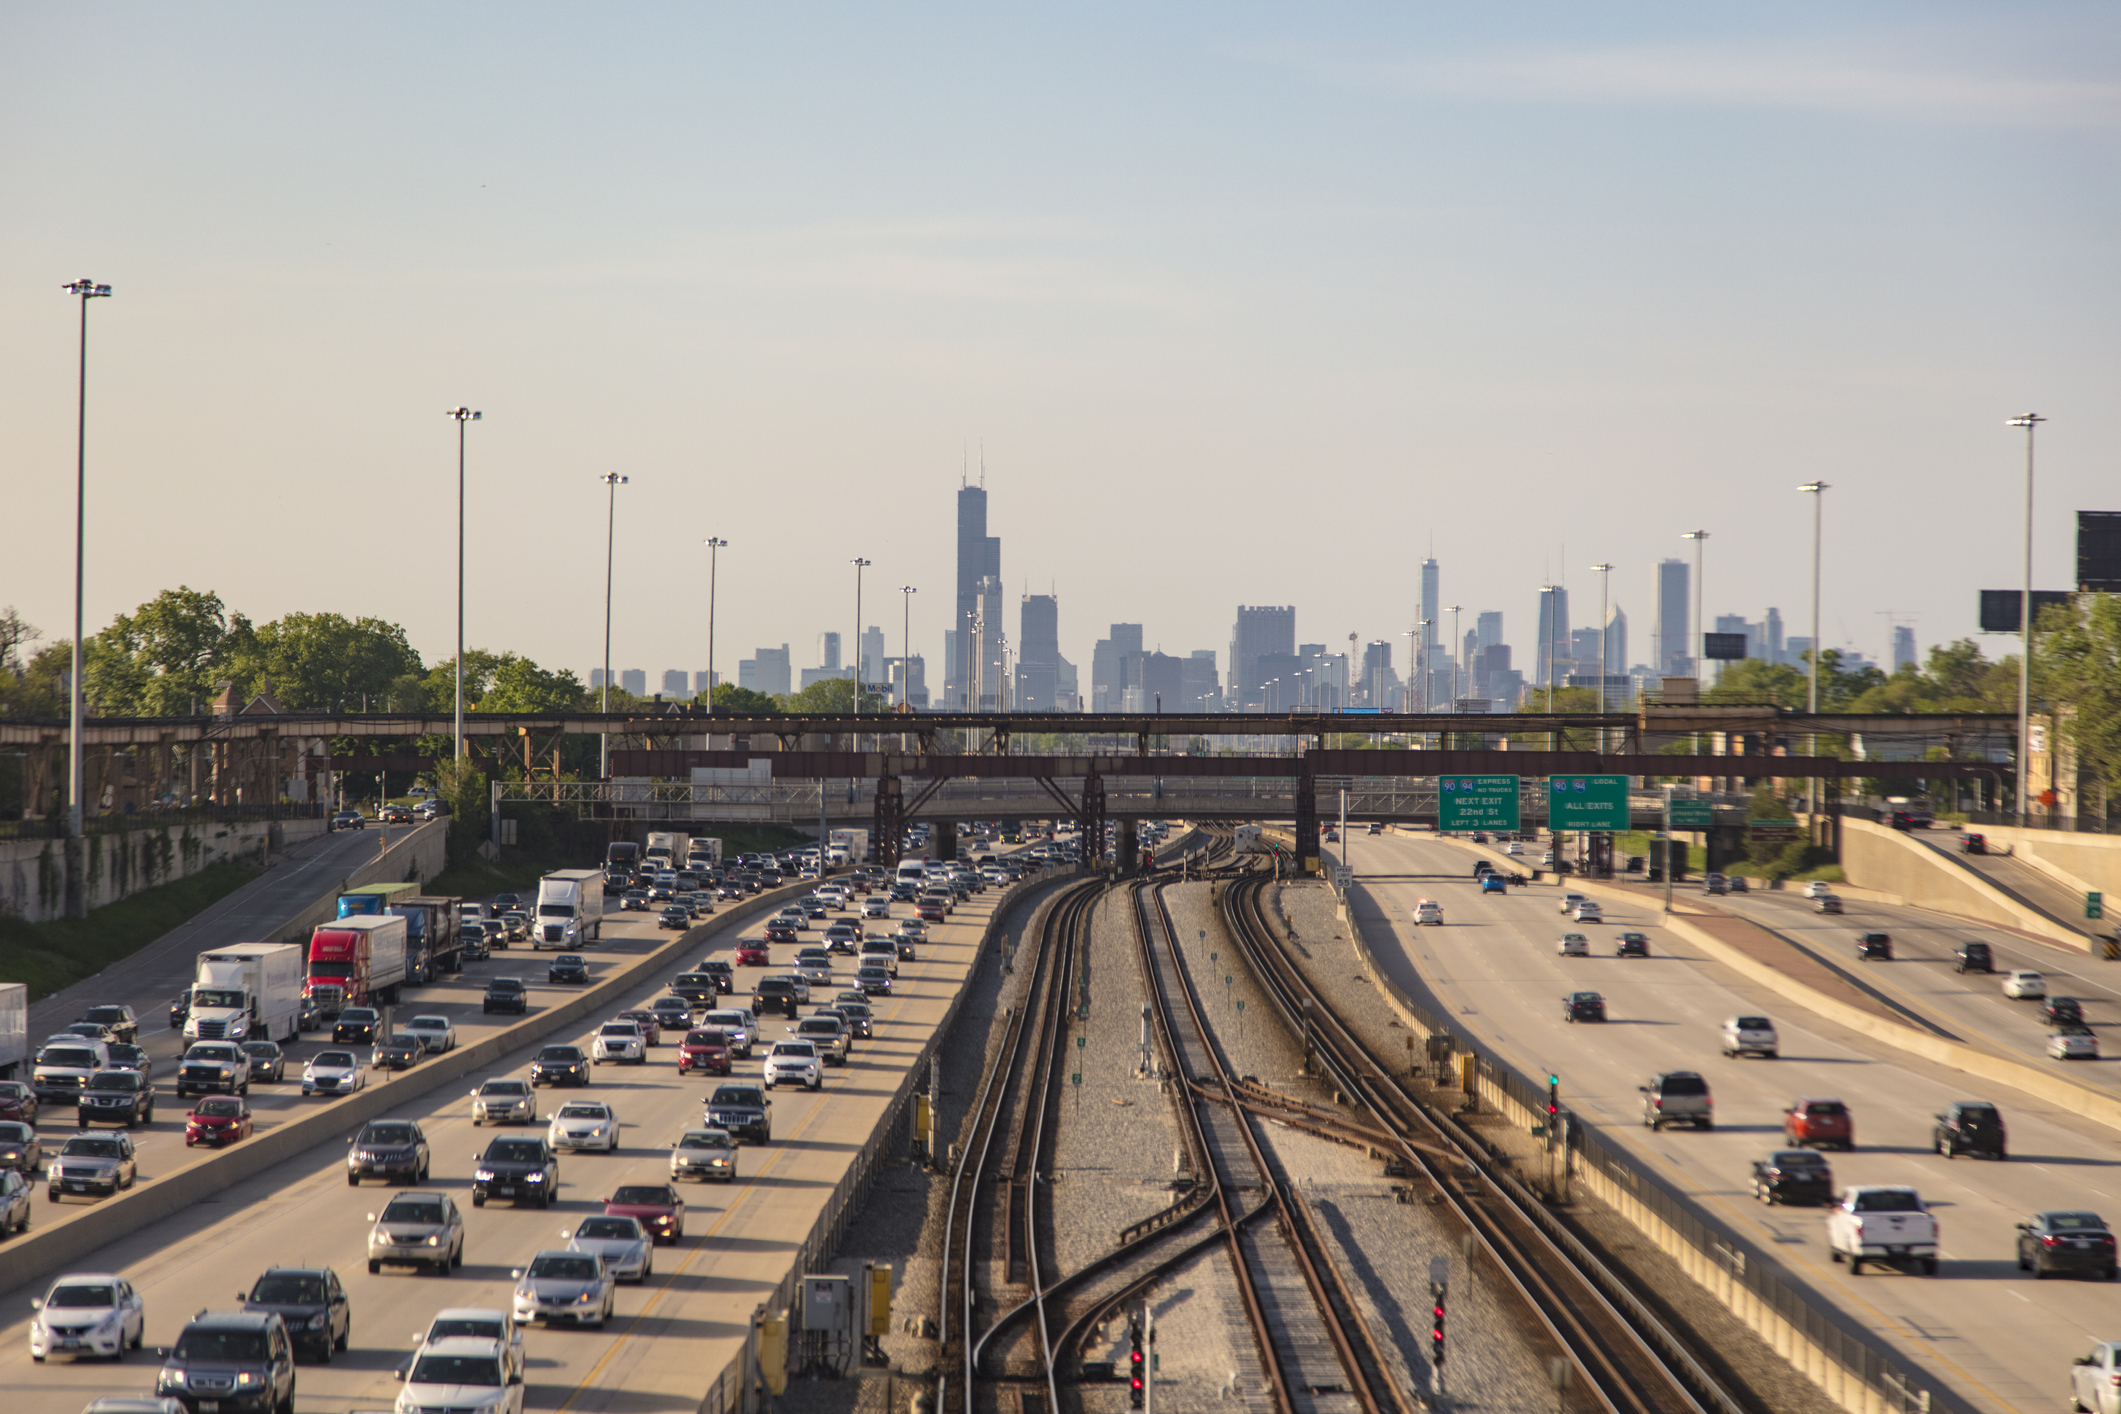 Elevated view of train tracks and multiple freeway lanes leading to Chicago. The skyline of Chicago covers the horizon. Moderate traffic leading into the city and heavy traffic leading away.